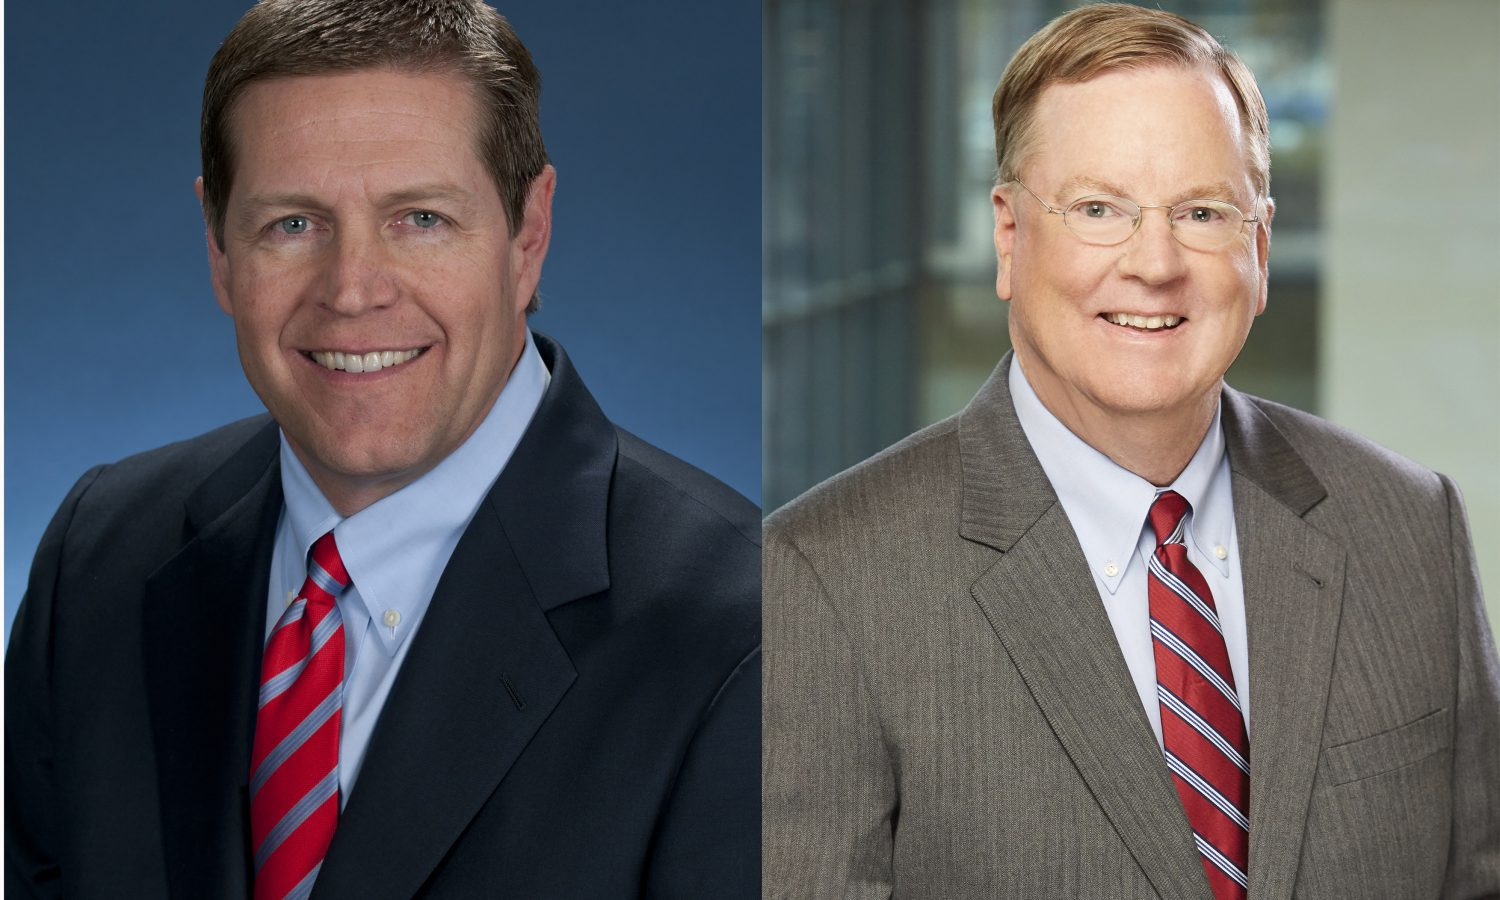 Toyota Financial Services President & CEO Mike Groff to Retire, Mark Templin Appointed as Successor